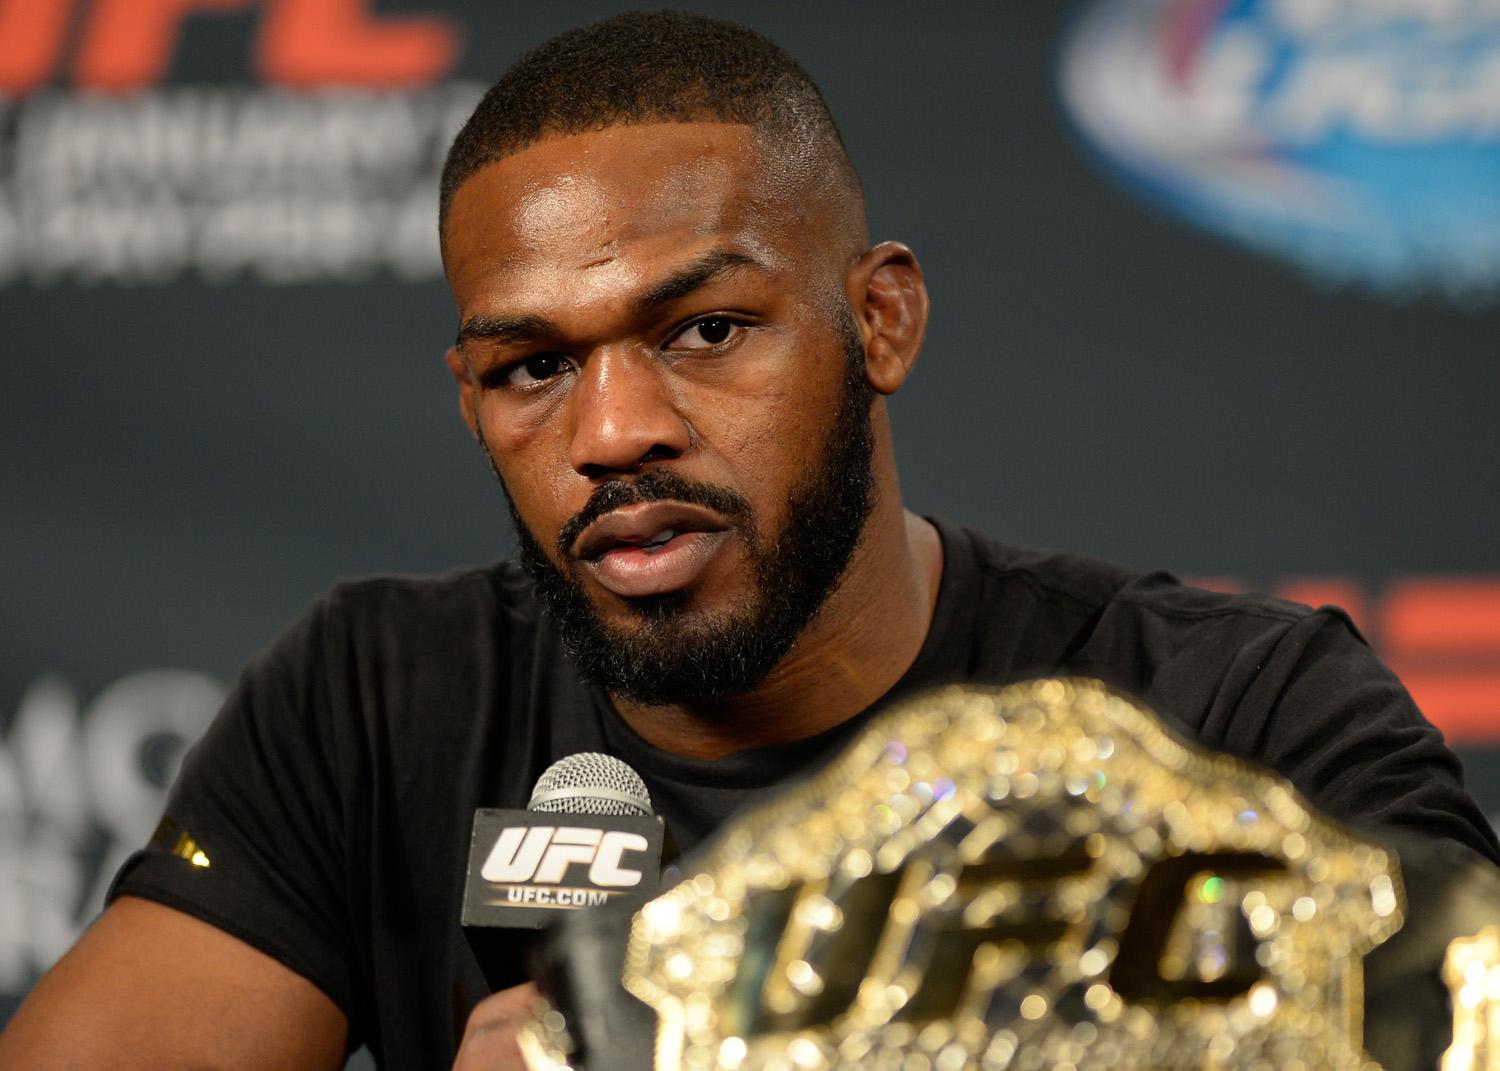 MMA: Jon Jones Enters Drug Rehab After Beating Daniel Cormier | Time